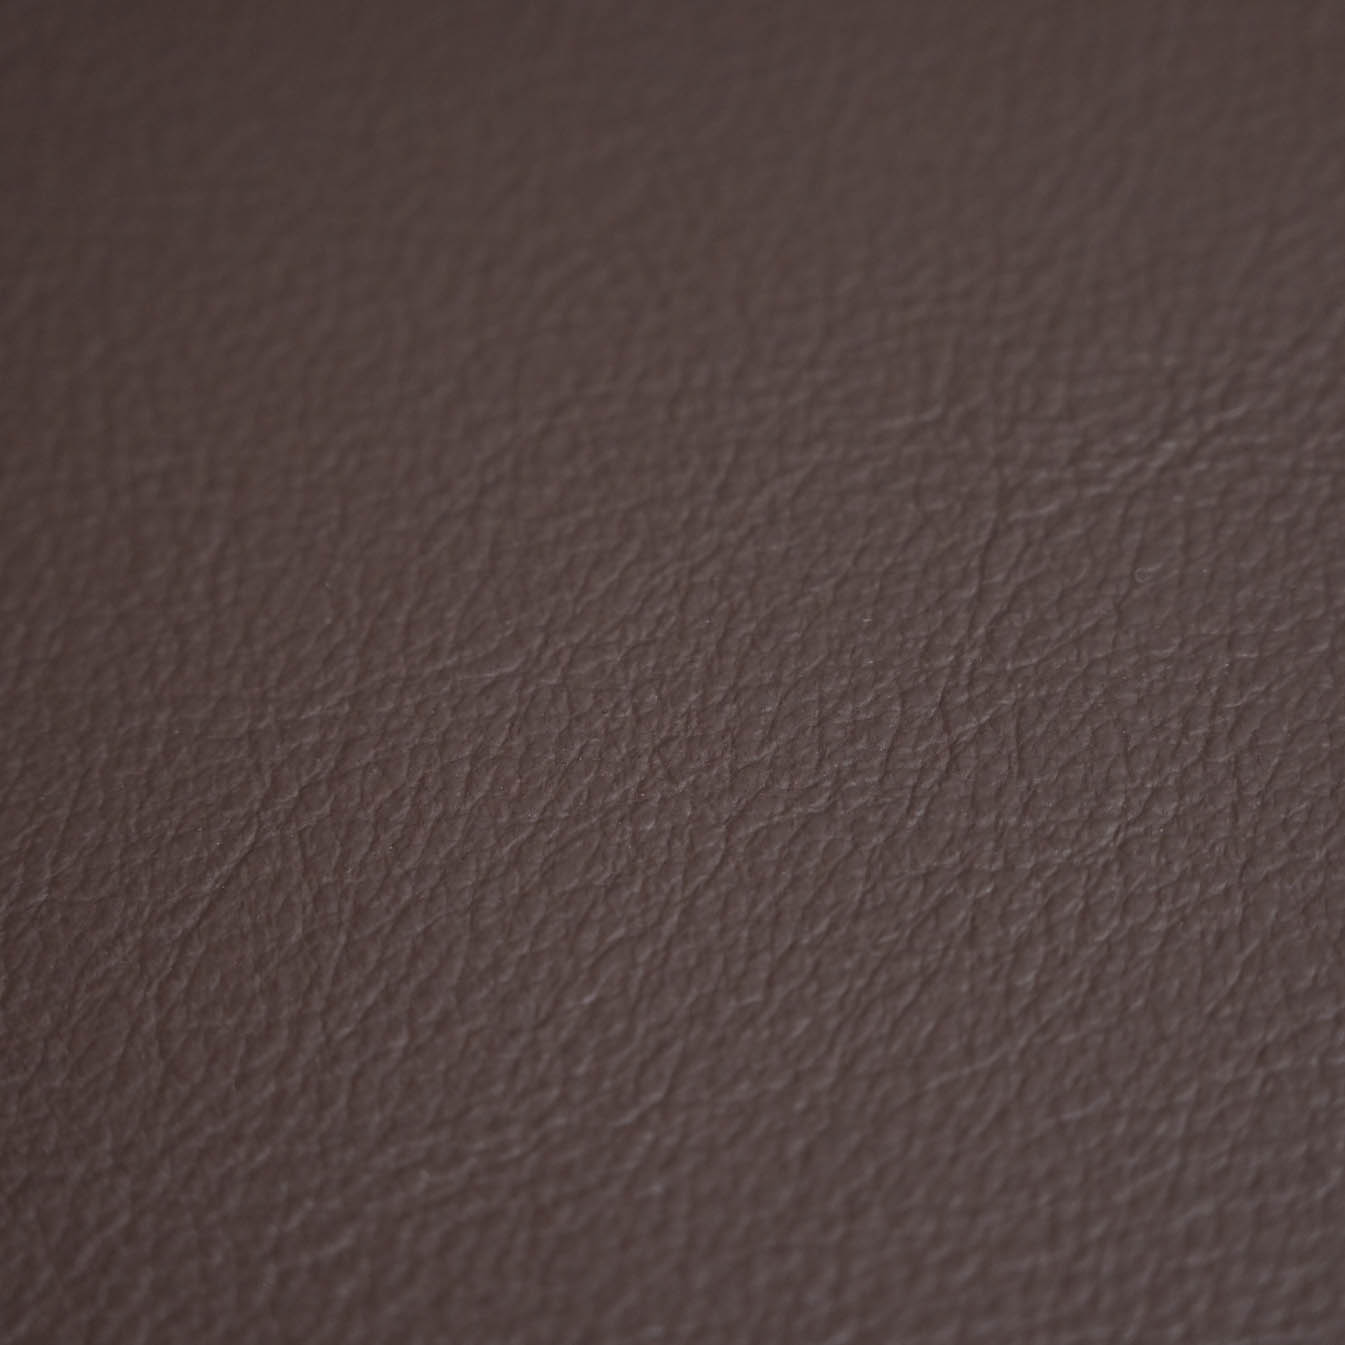 nappa leather in brown wood color